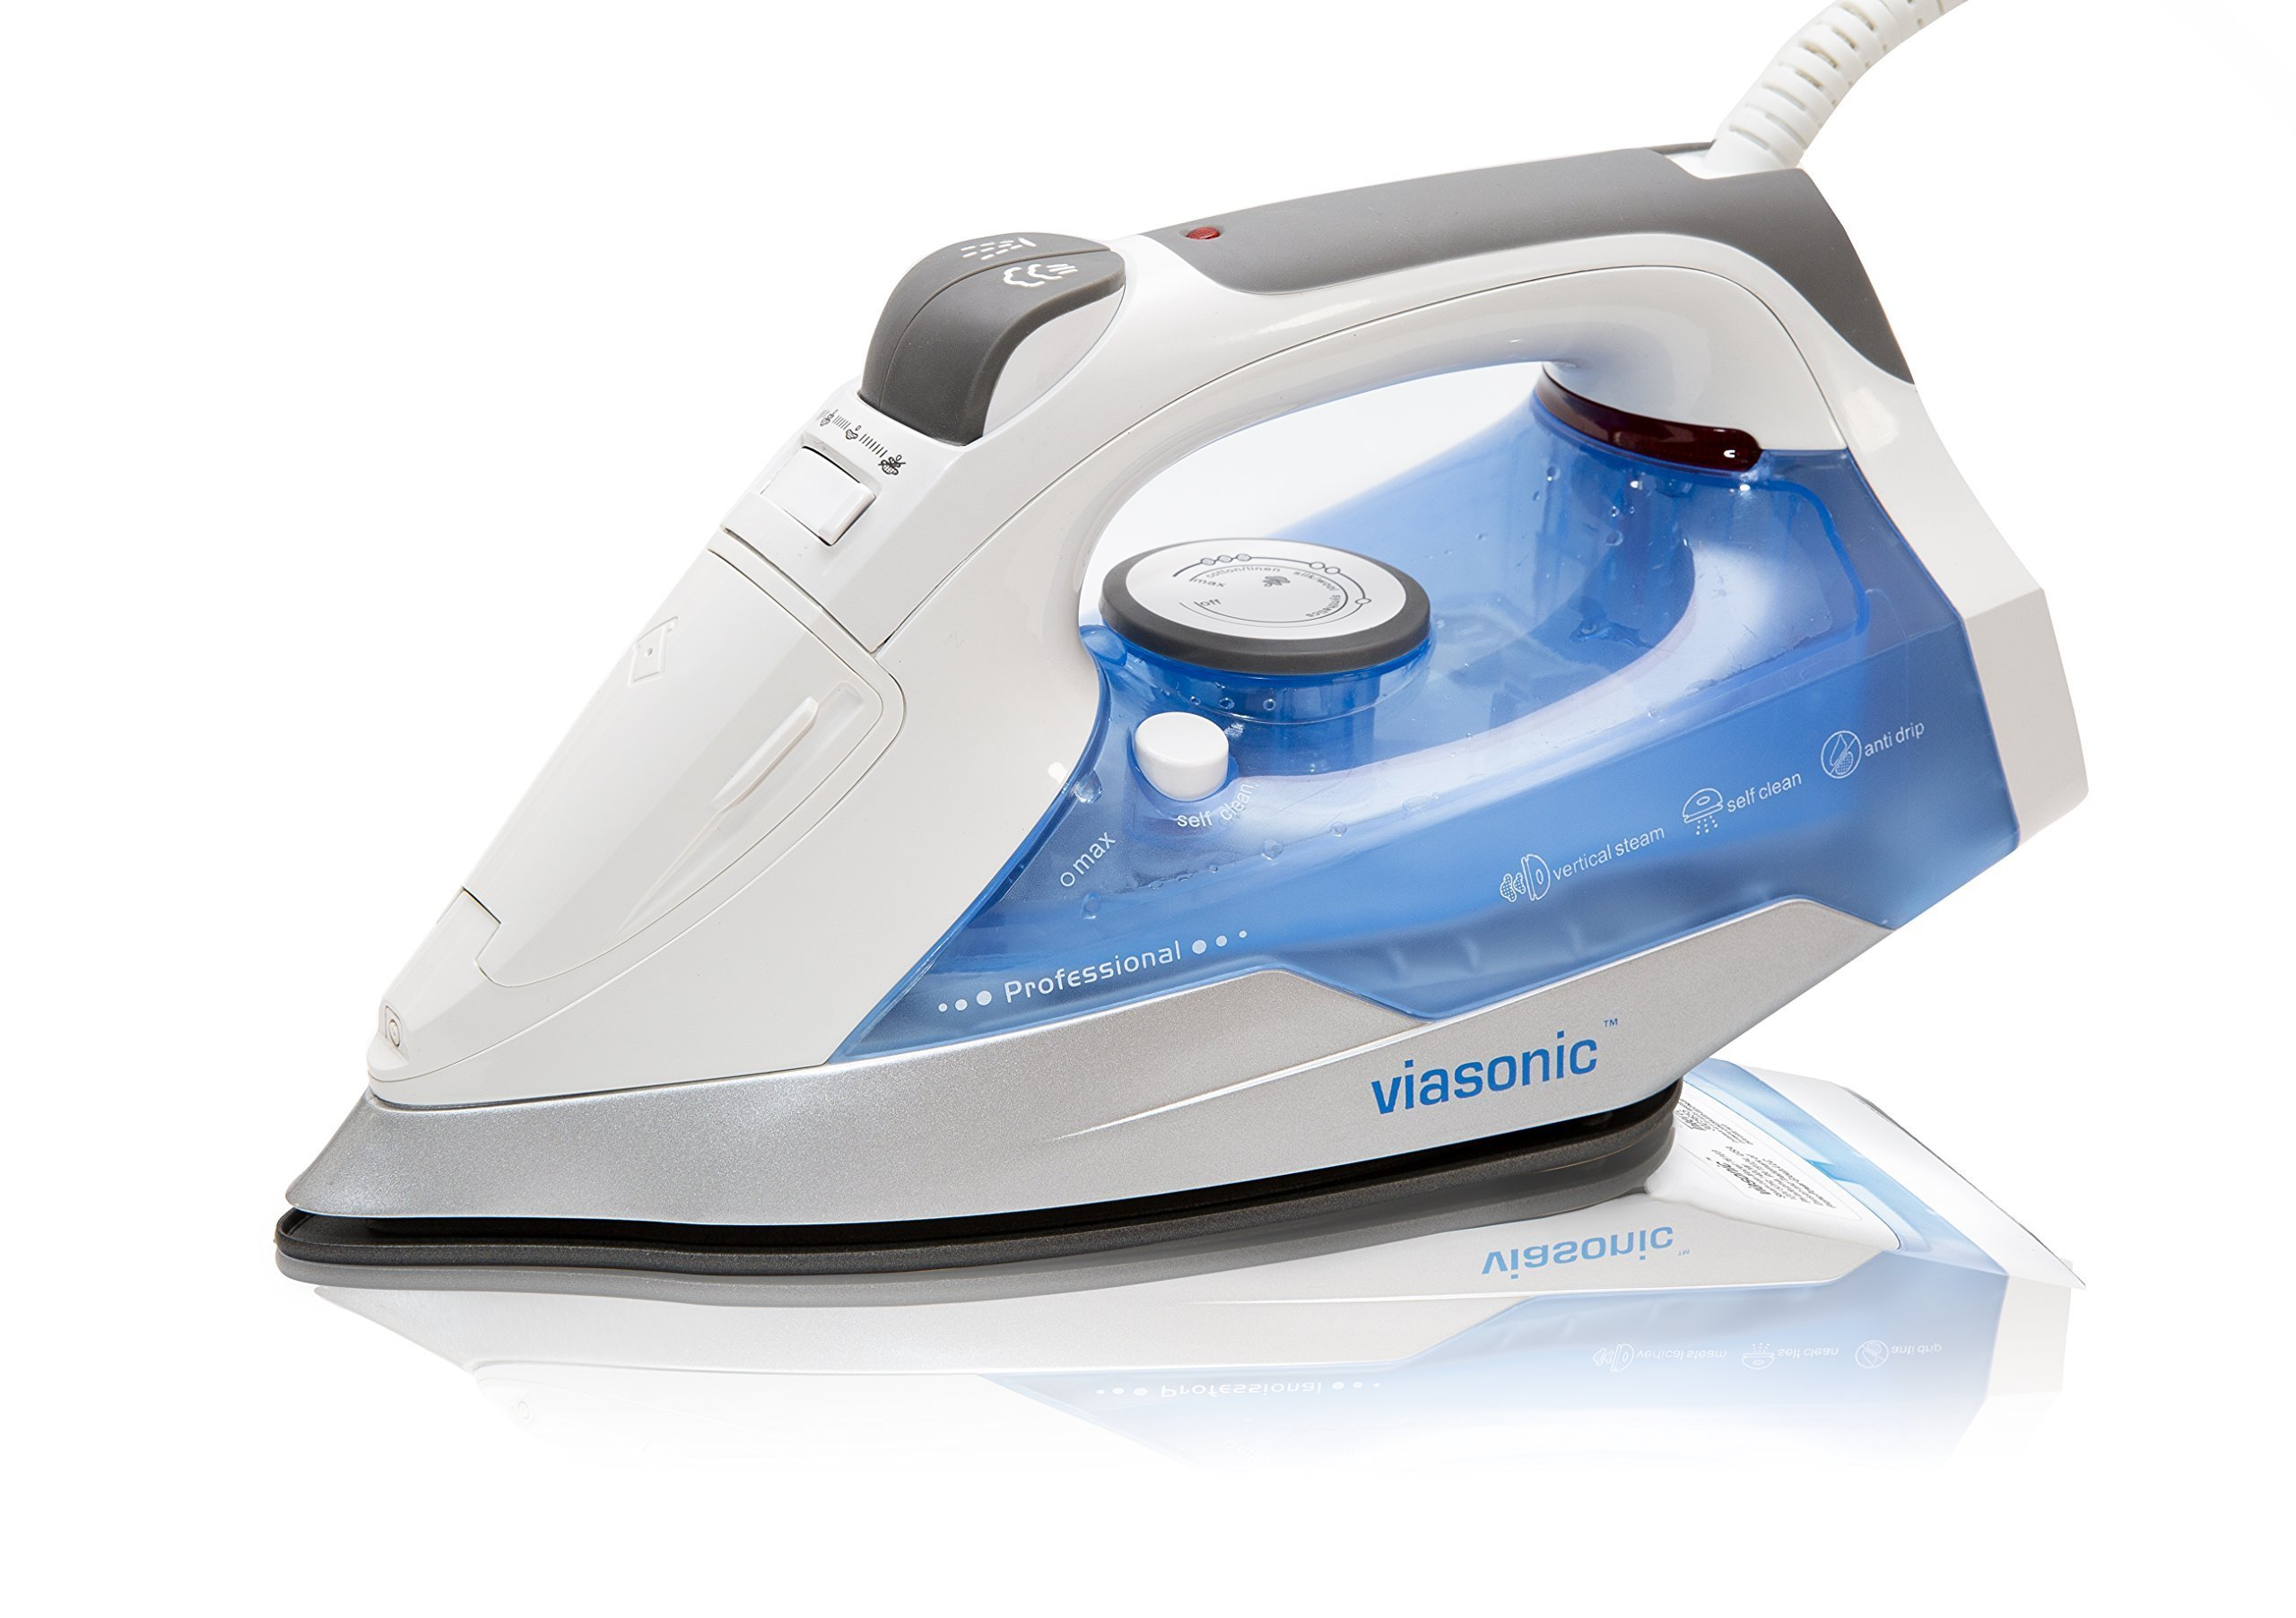 Viasonic Premium+ Steam Iron 1400W, Anti-Drip & Self-Cleaning, Anti-Calcium, Vertical Steam, NonStick Soleplate, XL 250ML Tank - Steam, Spray, & Dry Functions - ETL Listed, by Unity by Viasonic